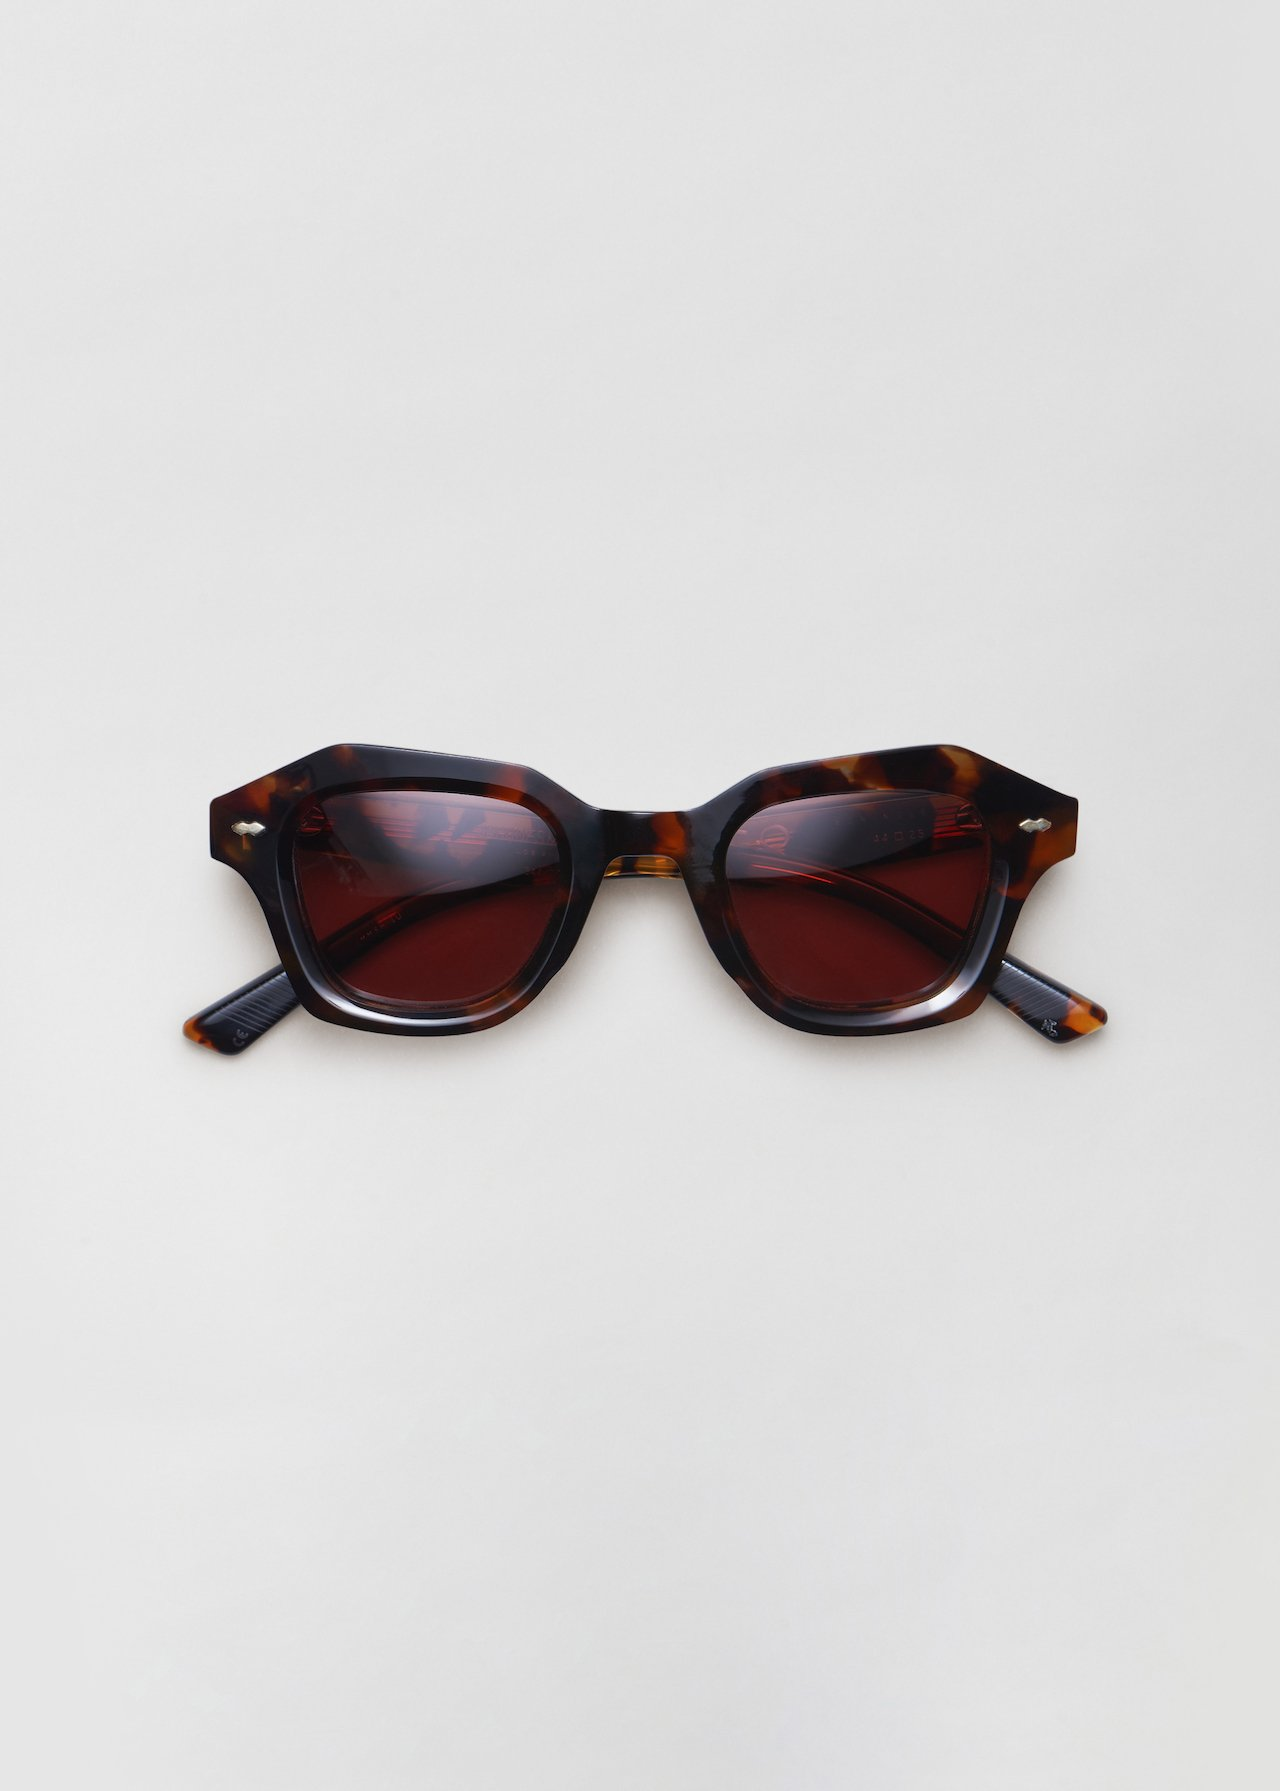 Schindler Sunglasses in Noir in Lava by Co Collections